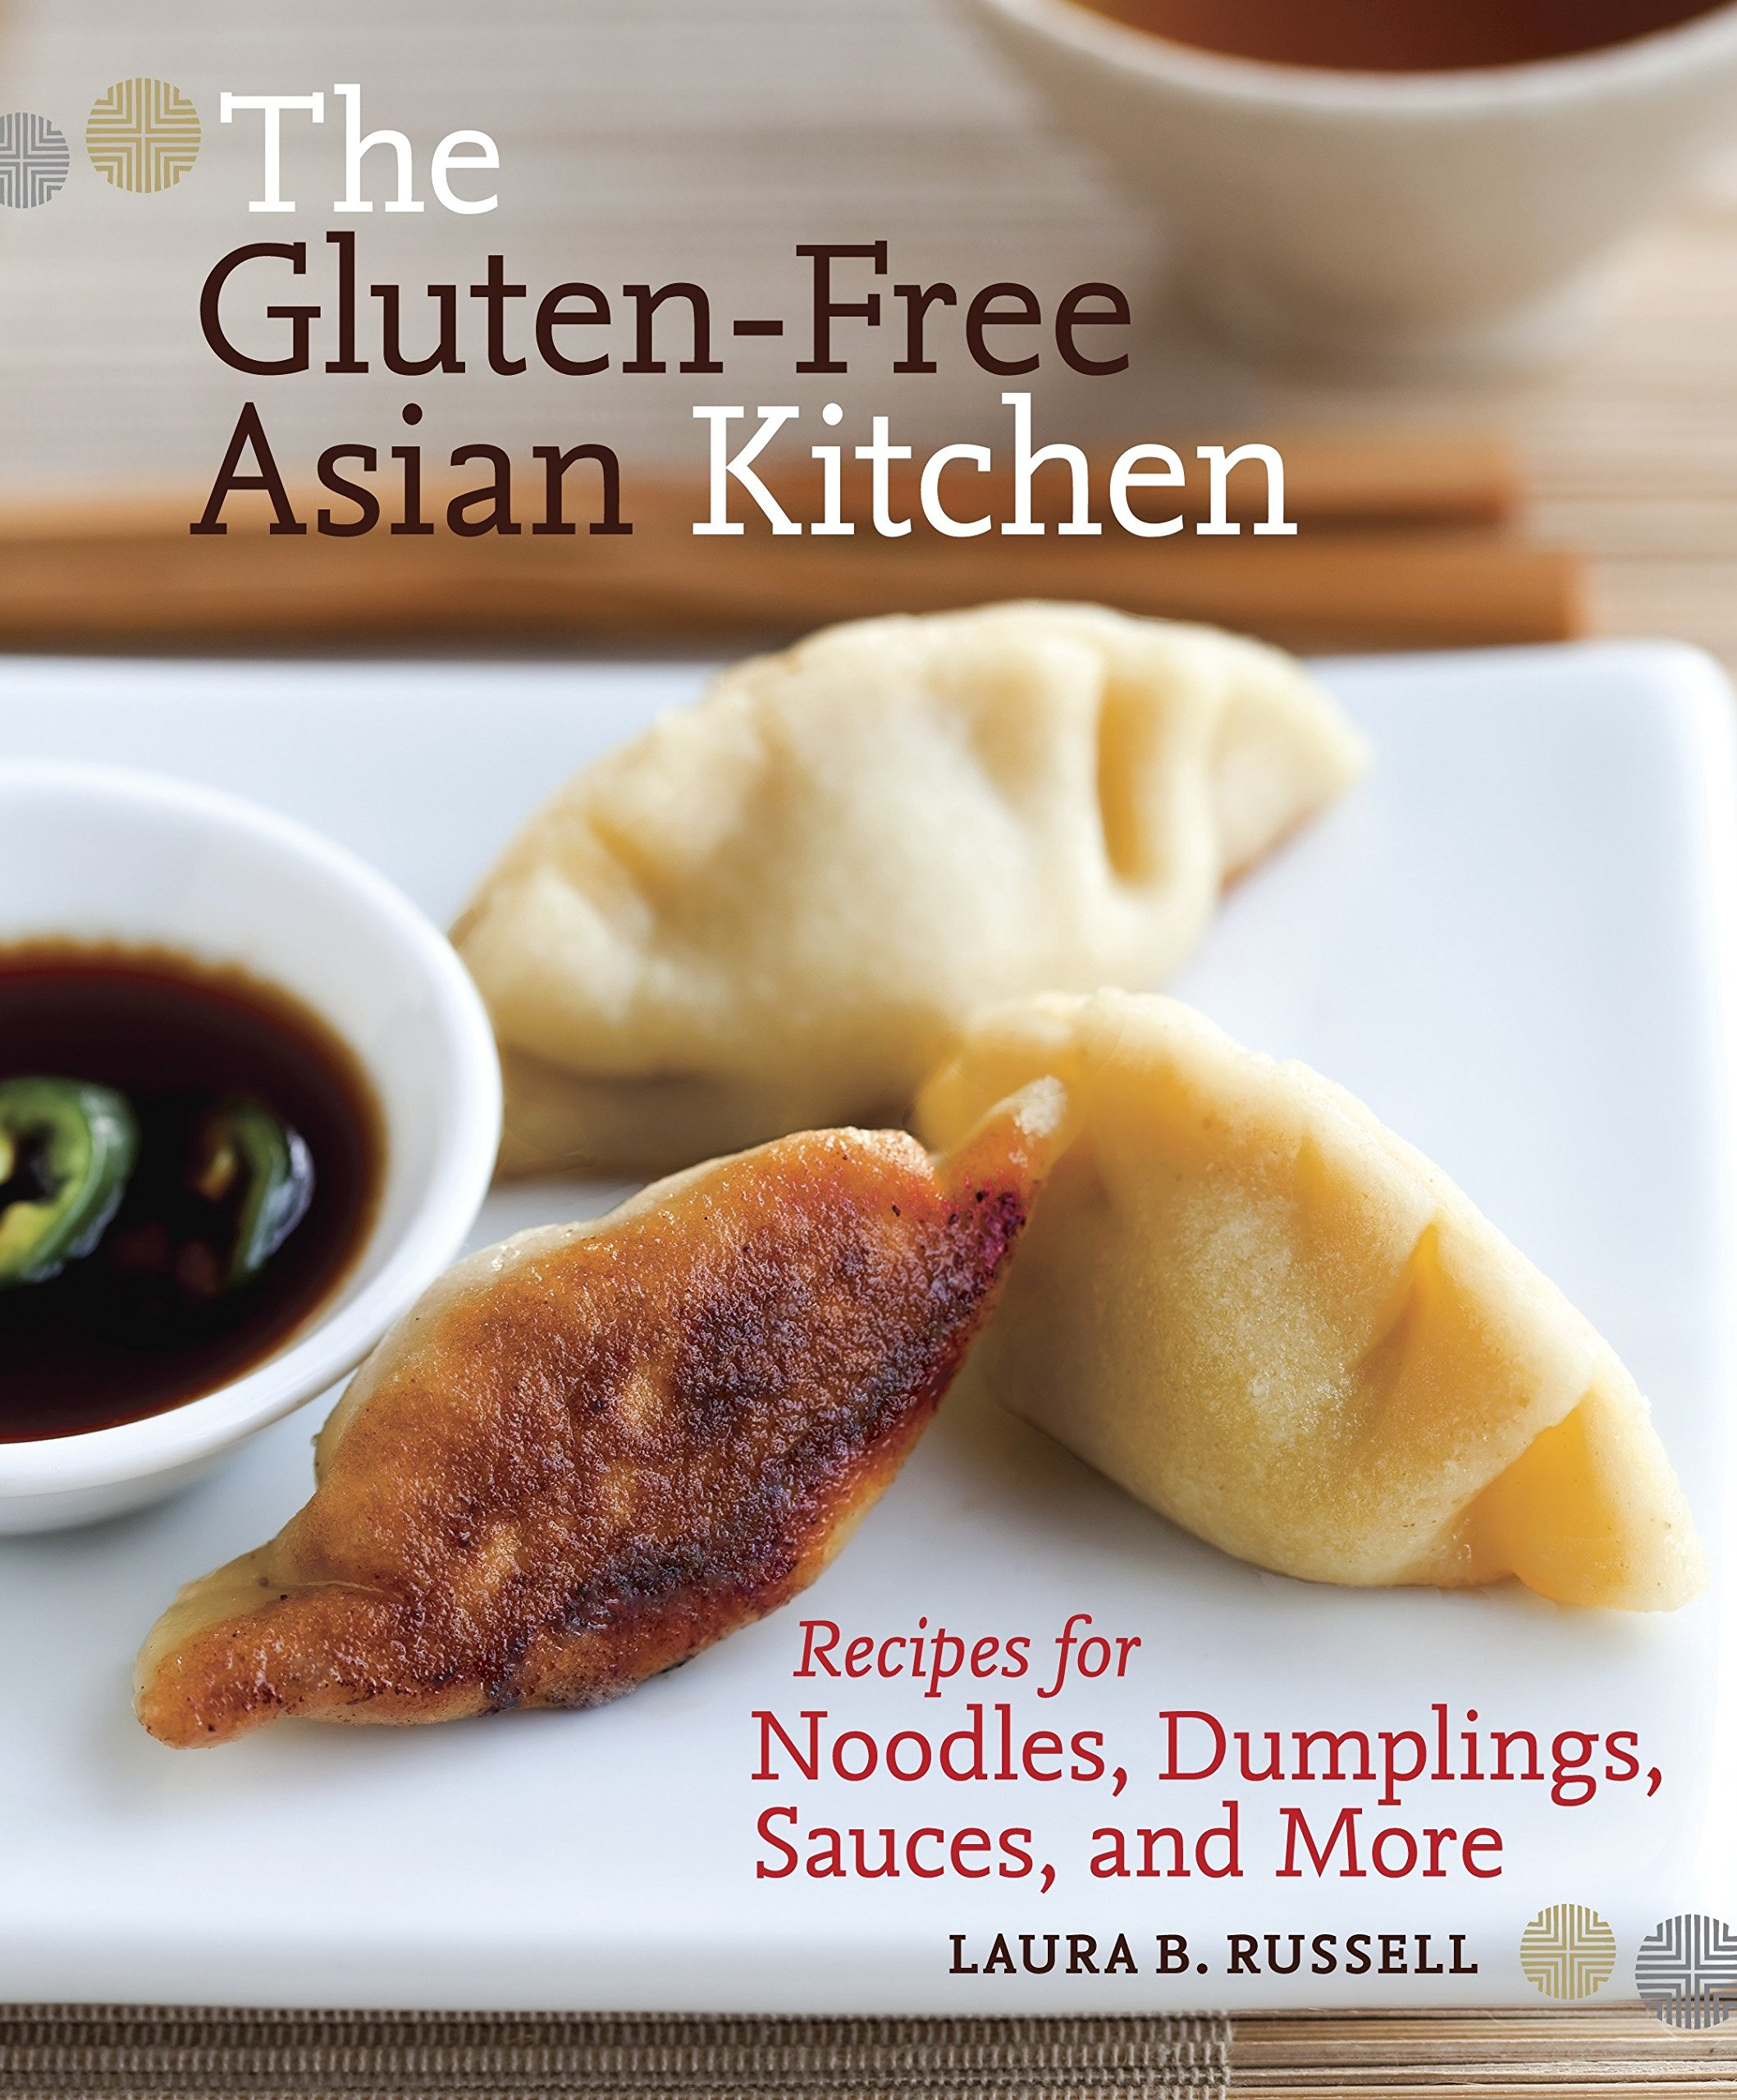 The Gluten-Free Asian Kitchen: Recipes for Noodles, Dumplings, Sauces, and More [A Cookbook] by Celestial Arts